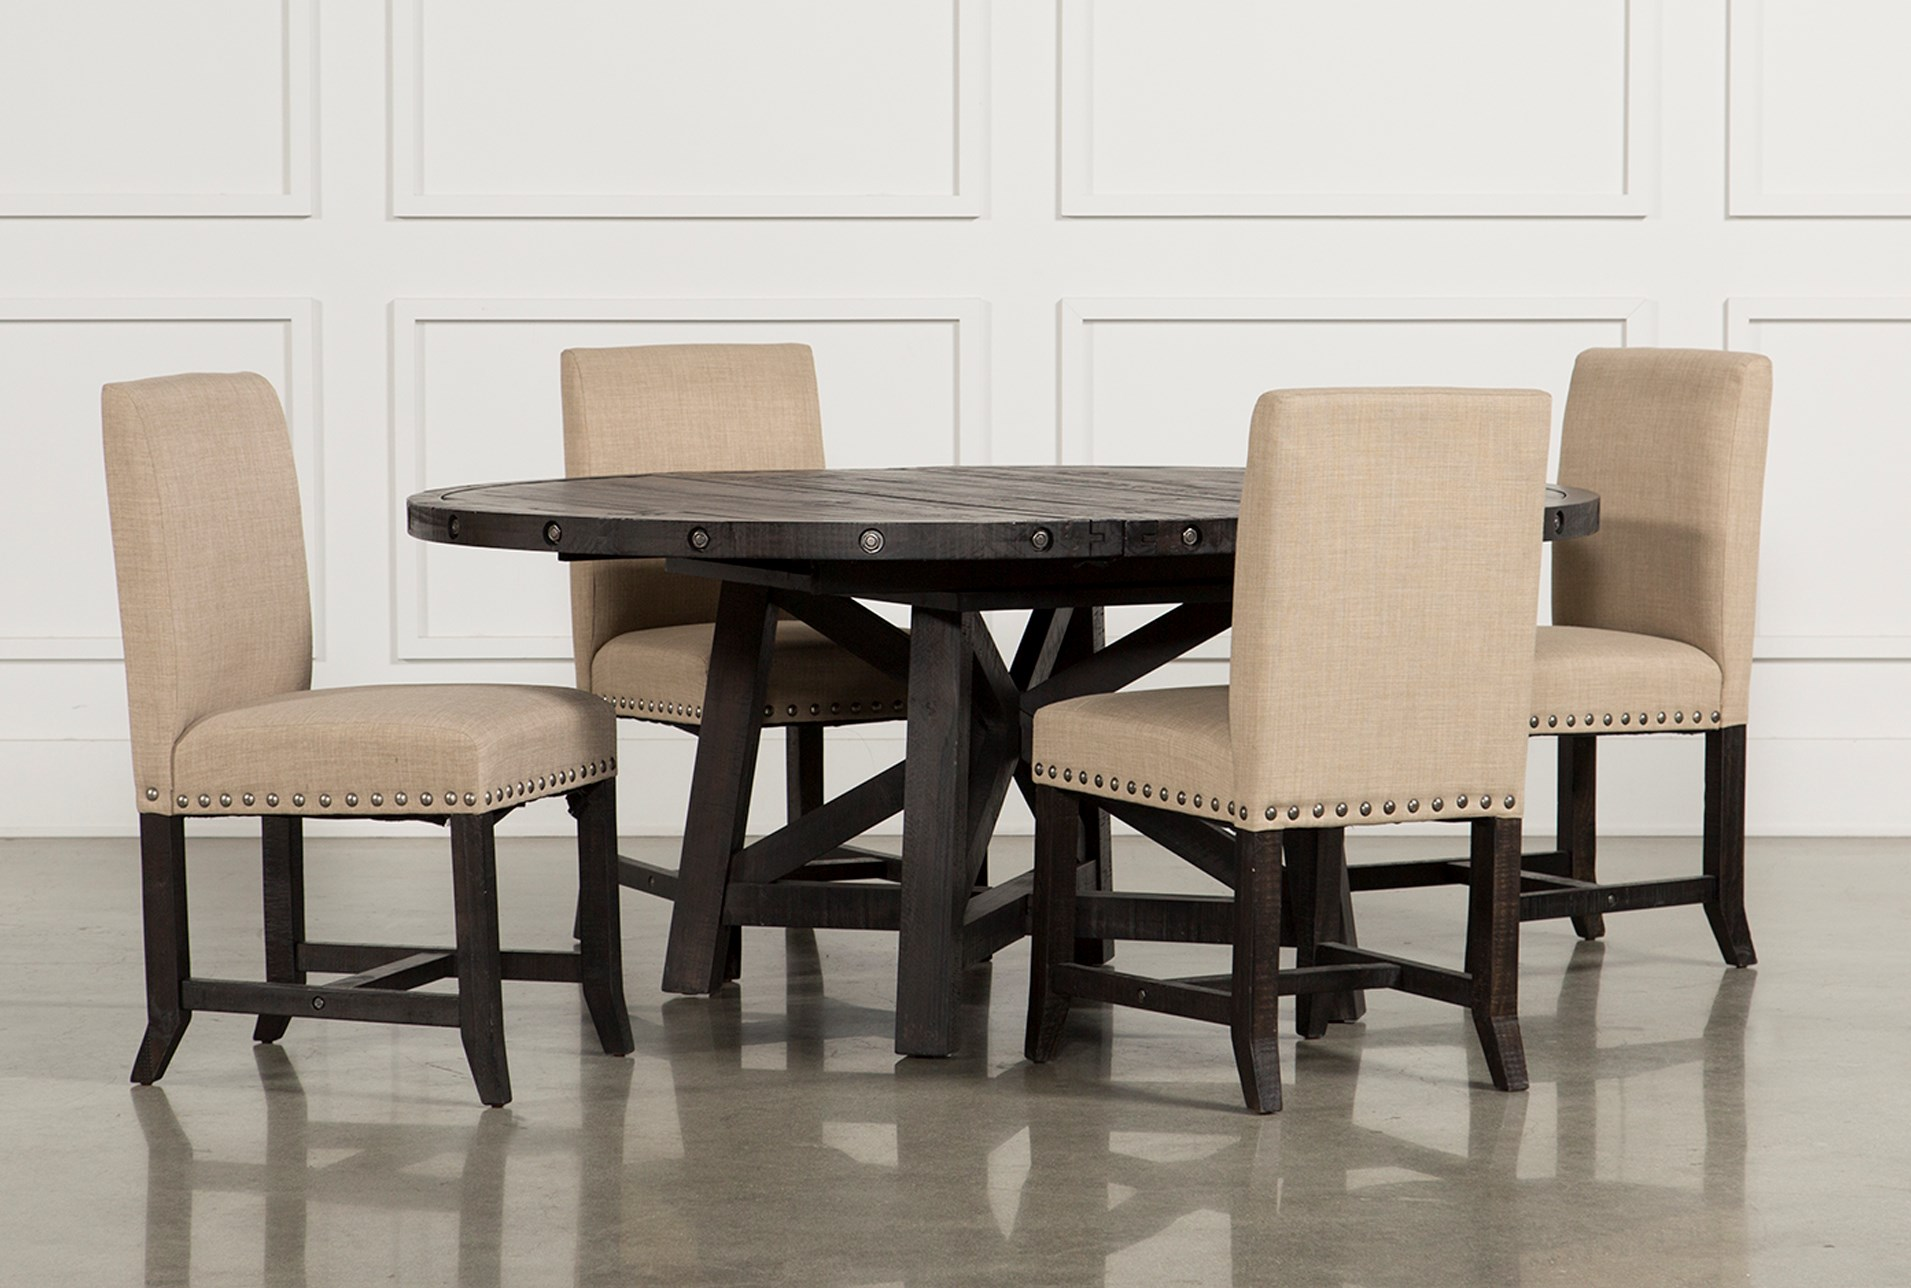 Jaxon 5 piece round dining set w upholstered chairs qty 1 has been successfully added to your cart